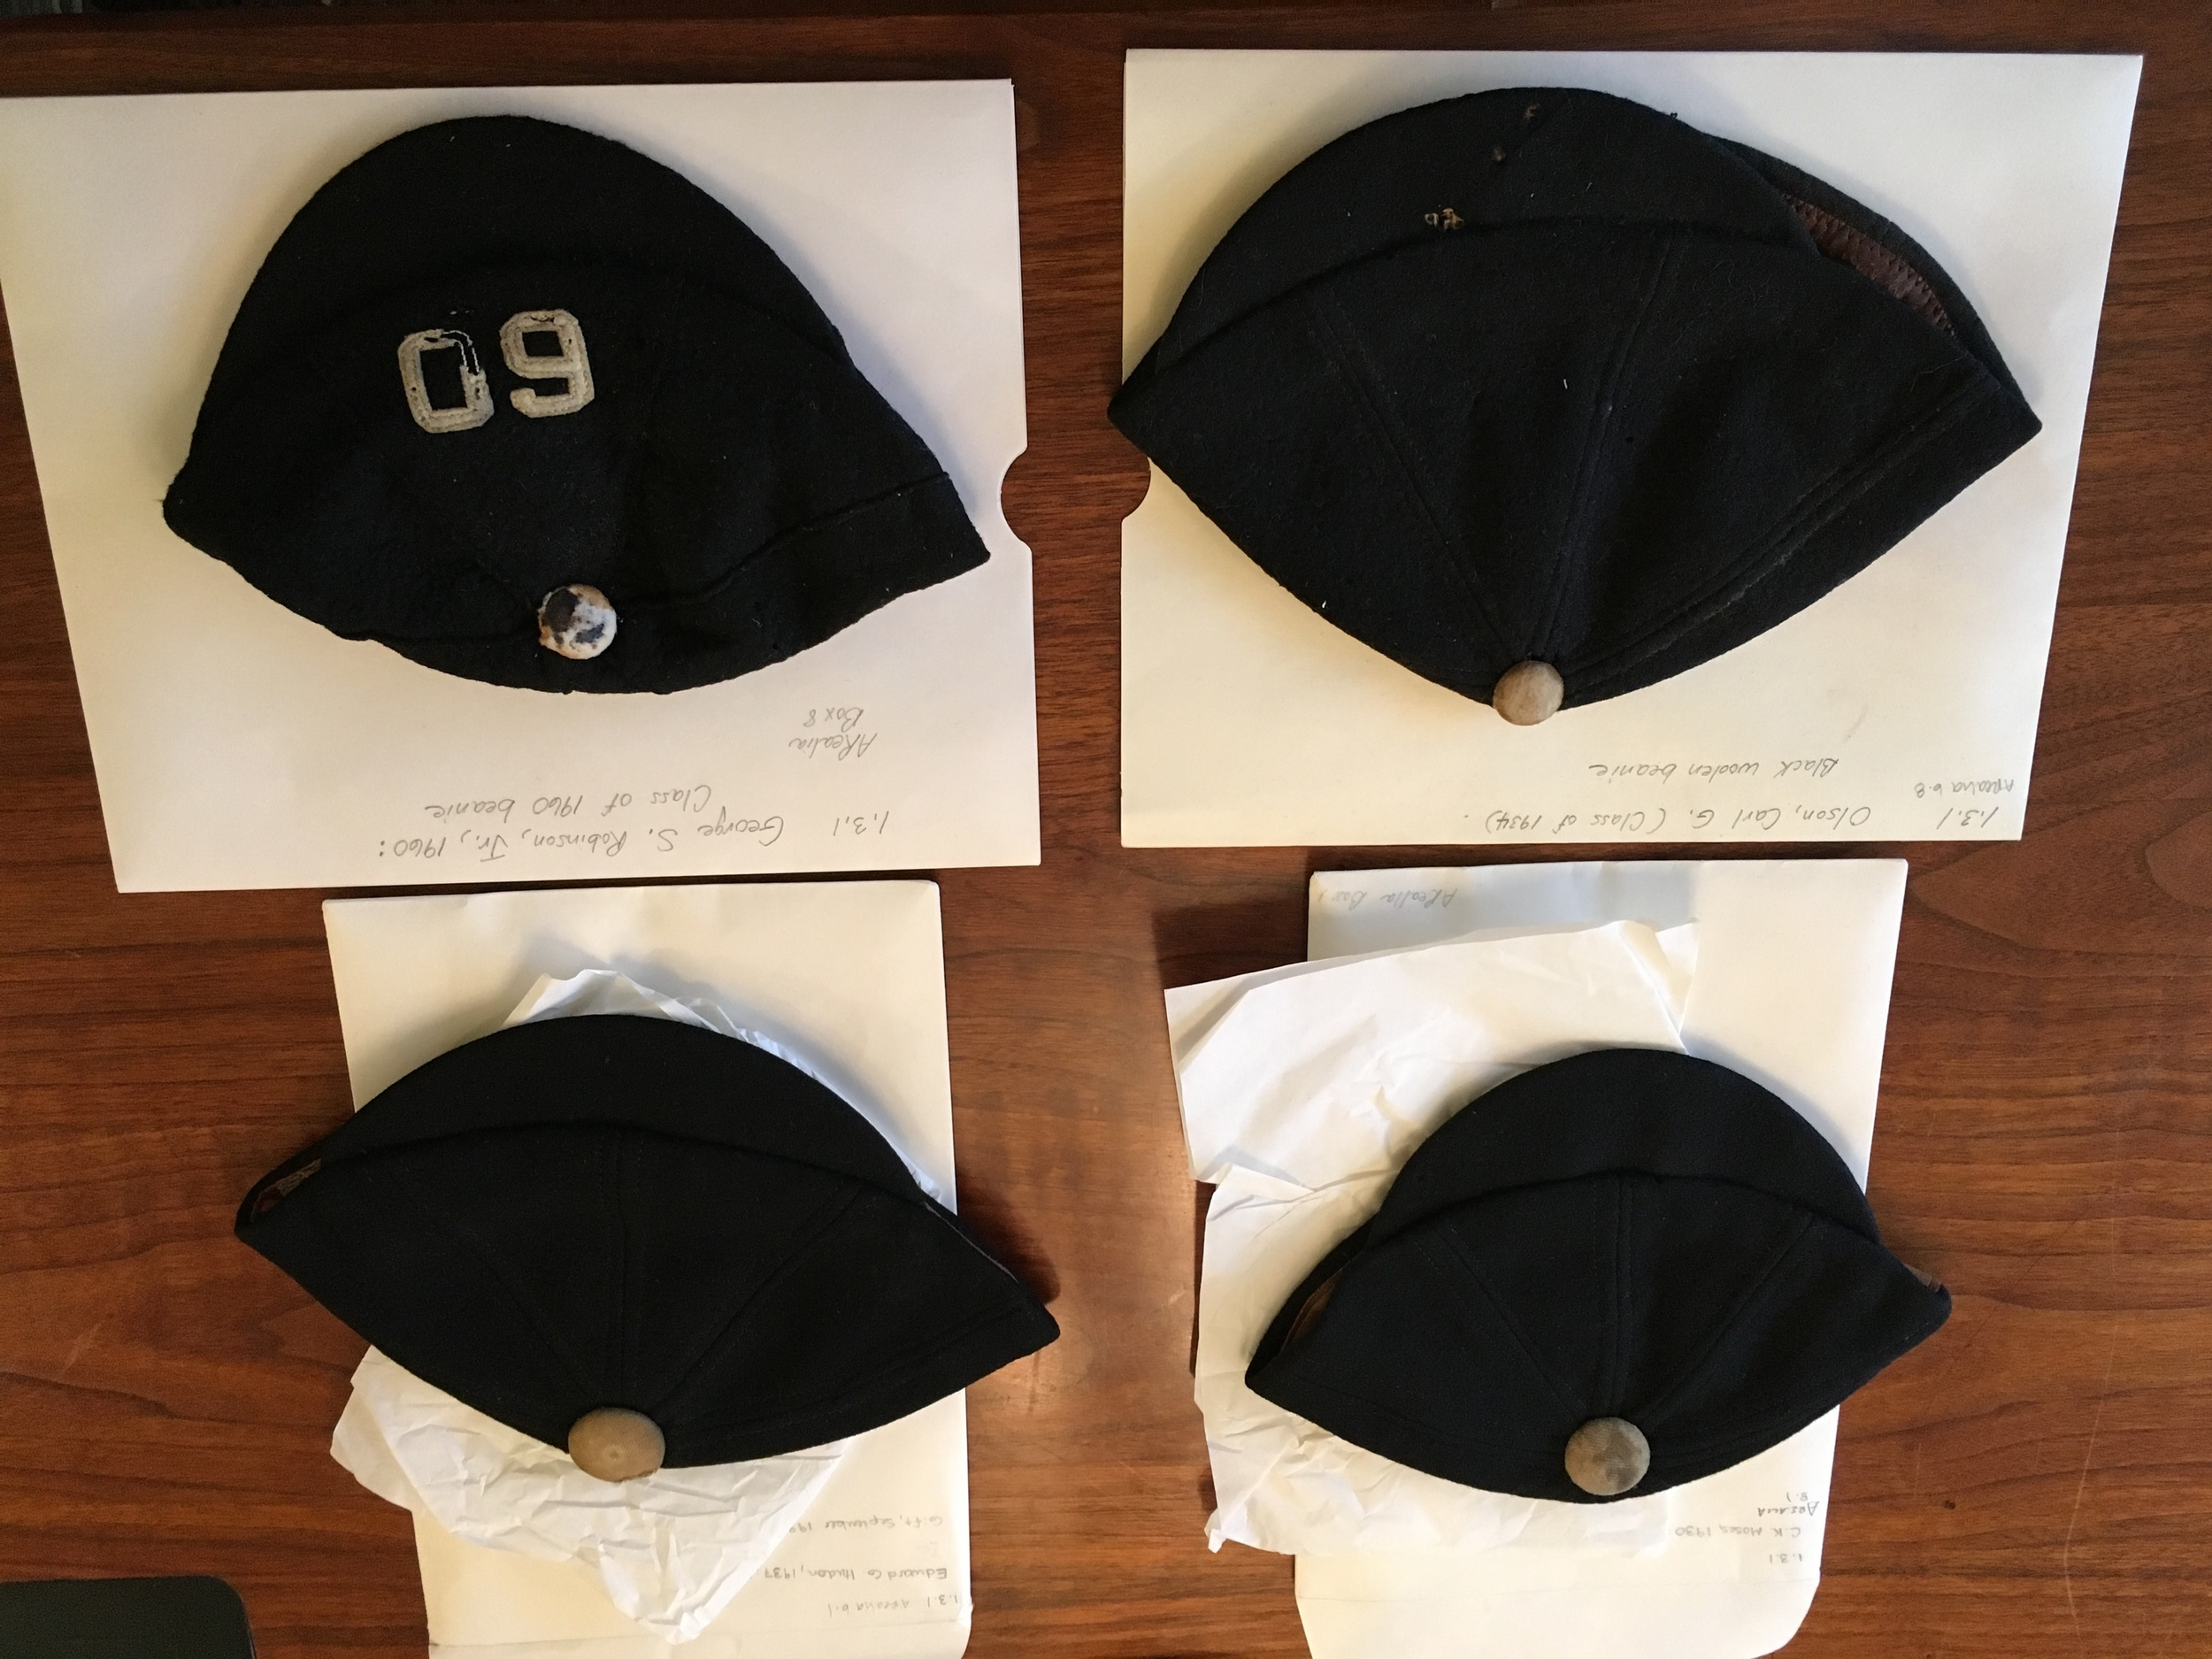 Bowdoin Beanies throughout the years